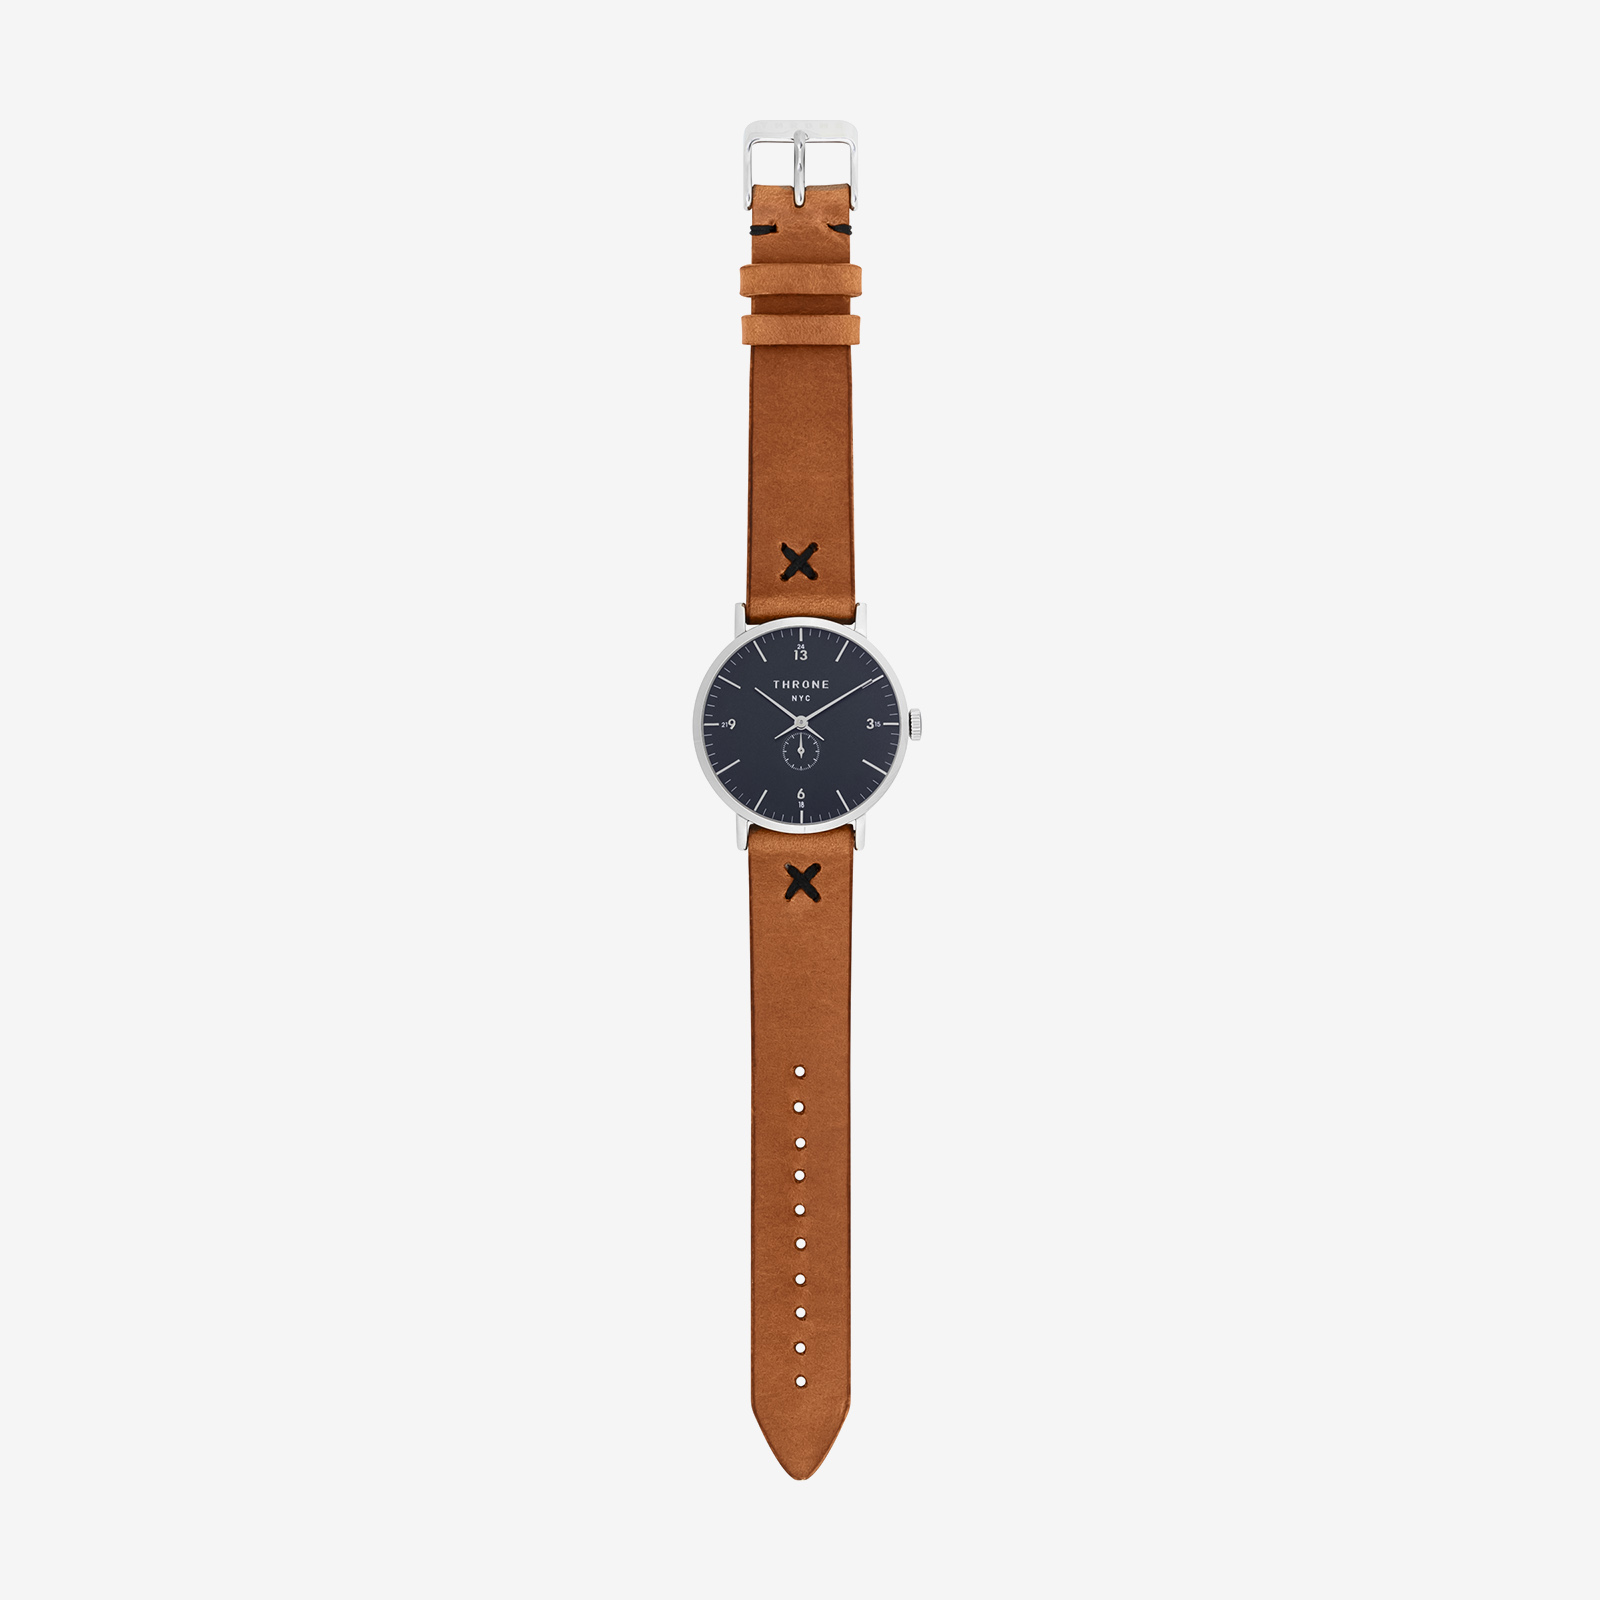 Watch product photography